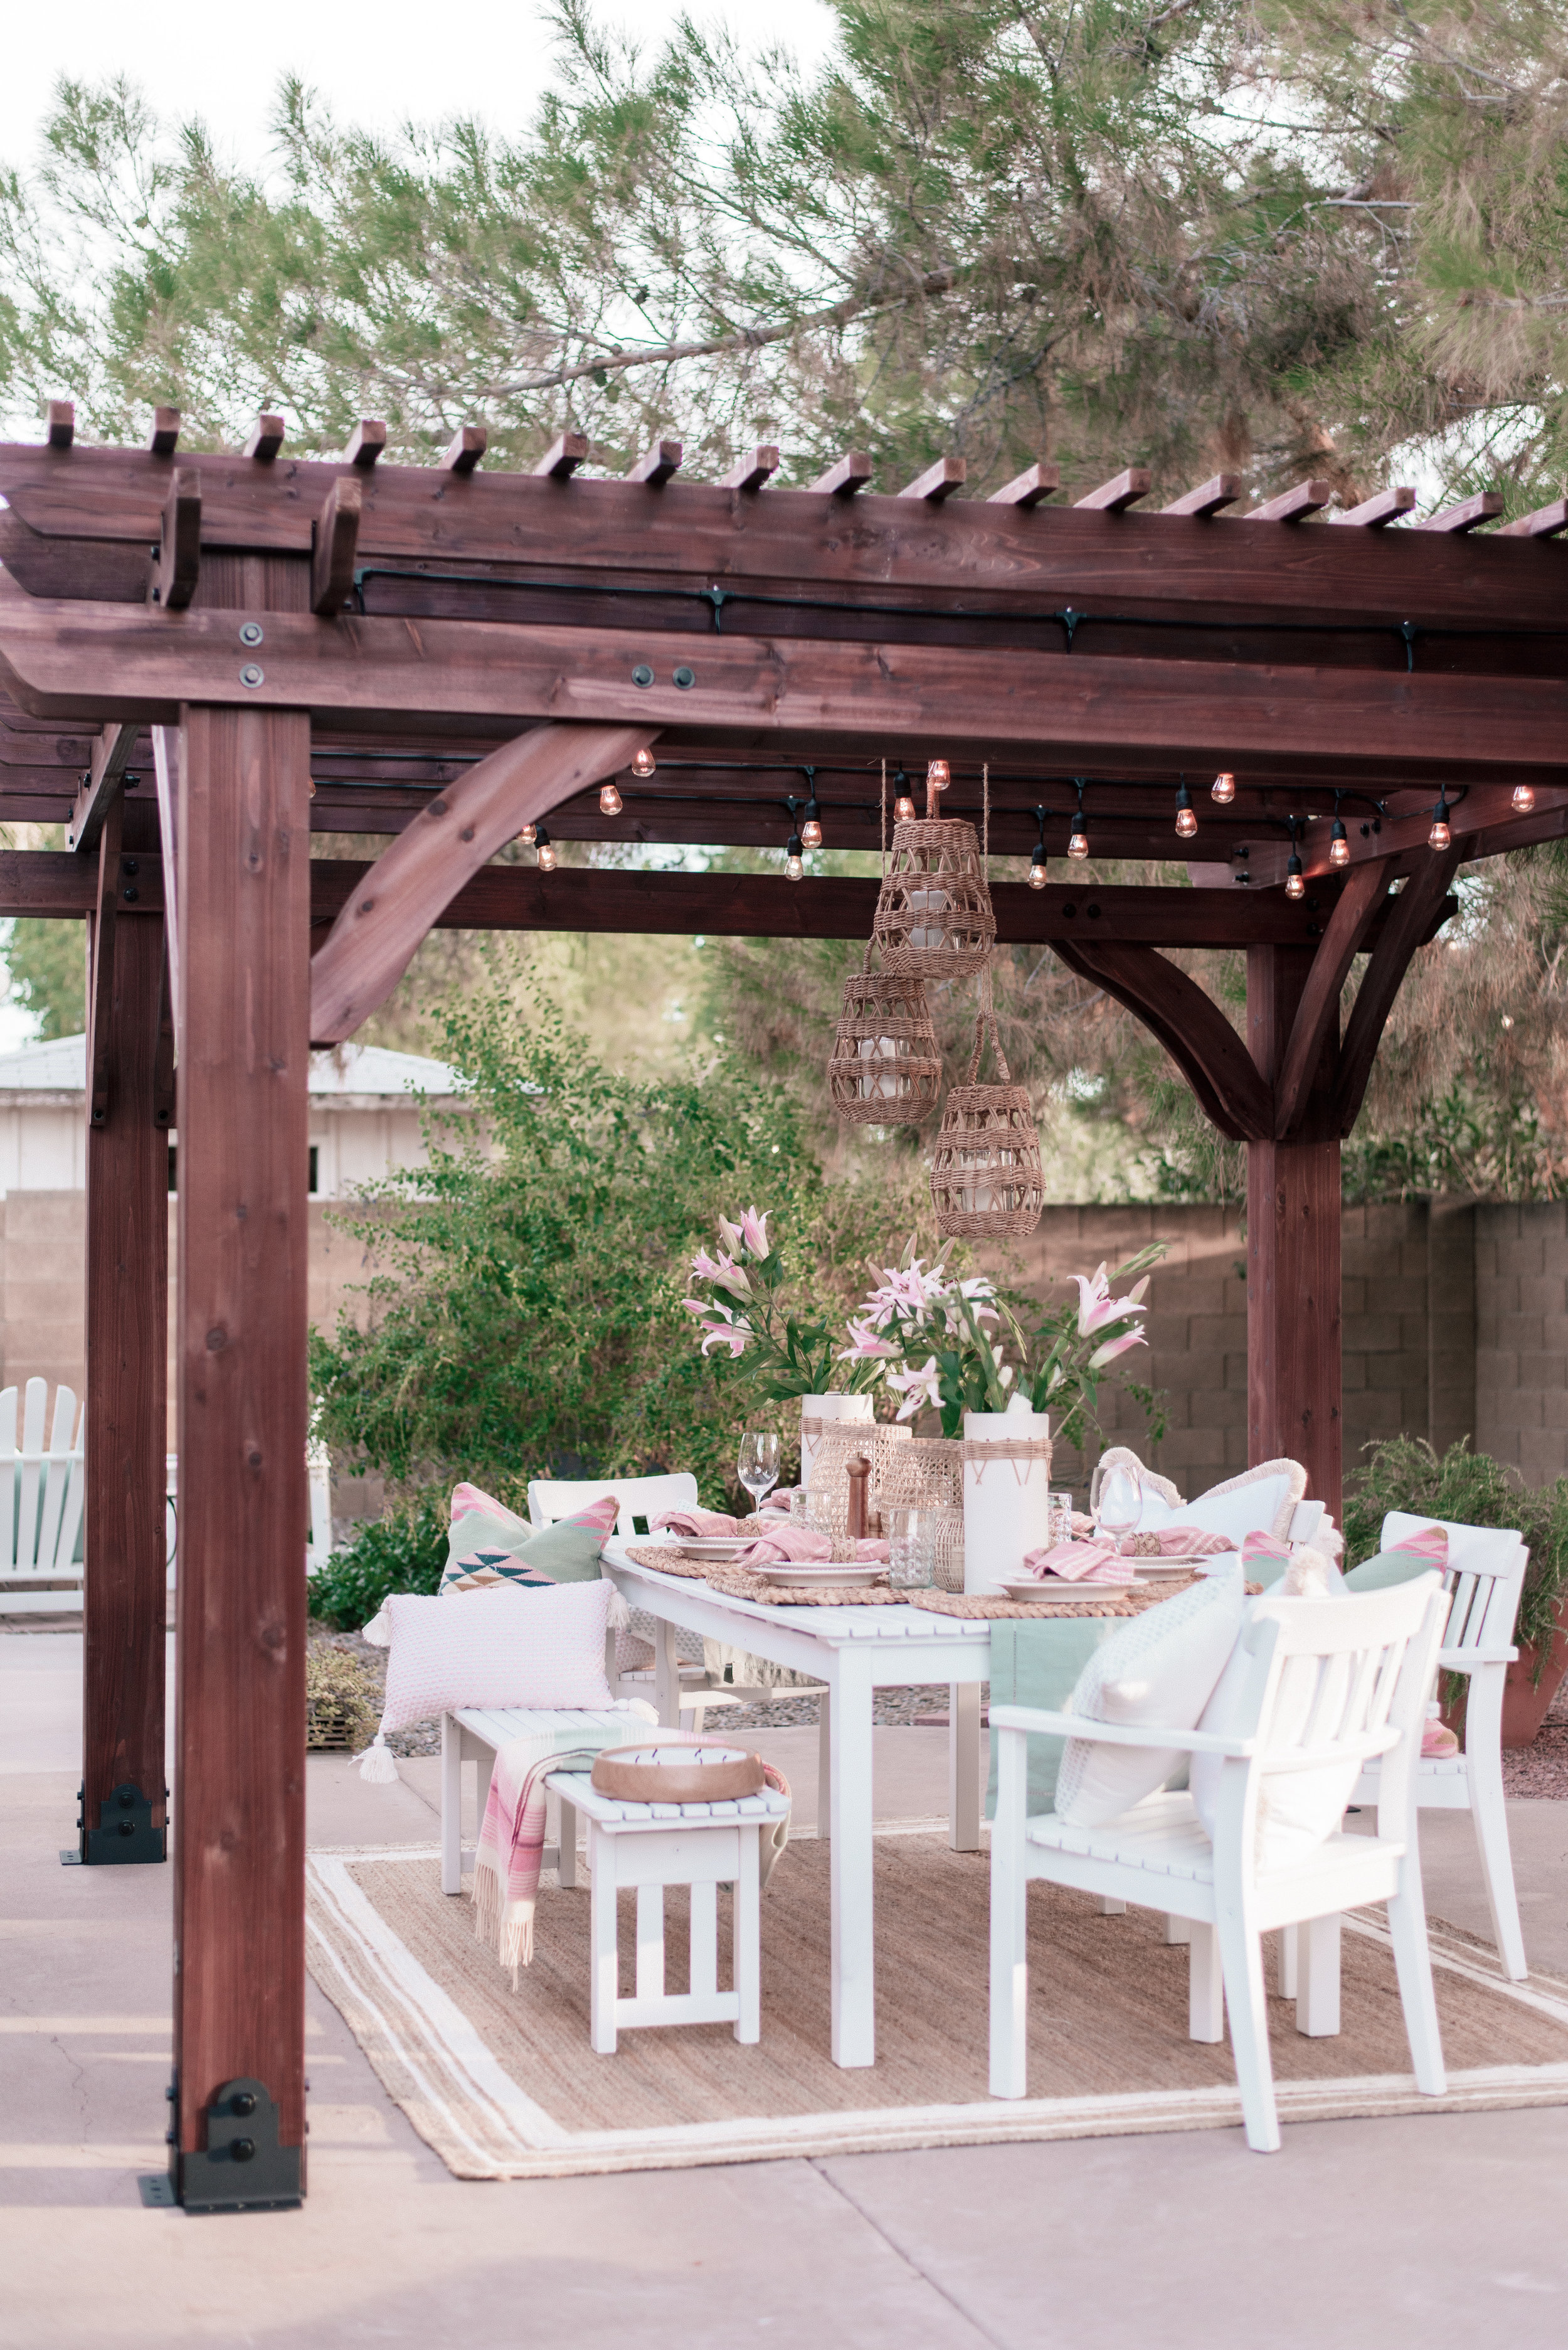 backyard patio pergola project with Home Depot and Leisure Time Product featured by top US lifestyle blog, Love + Specs: image of a white patio table under a wood backyard patio pergola